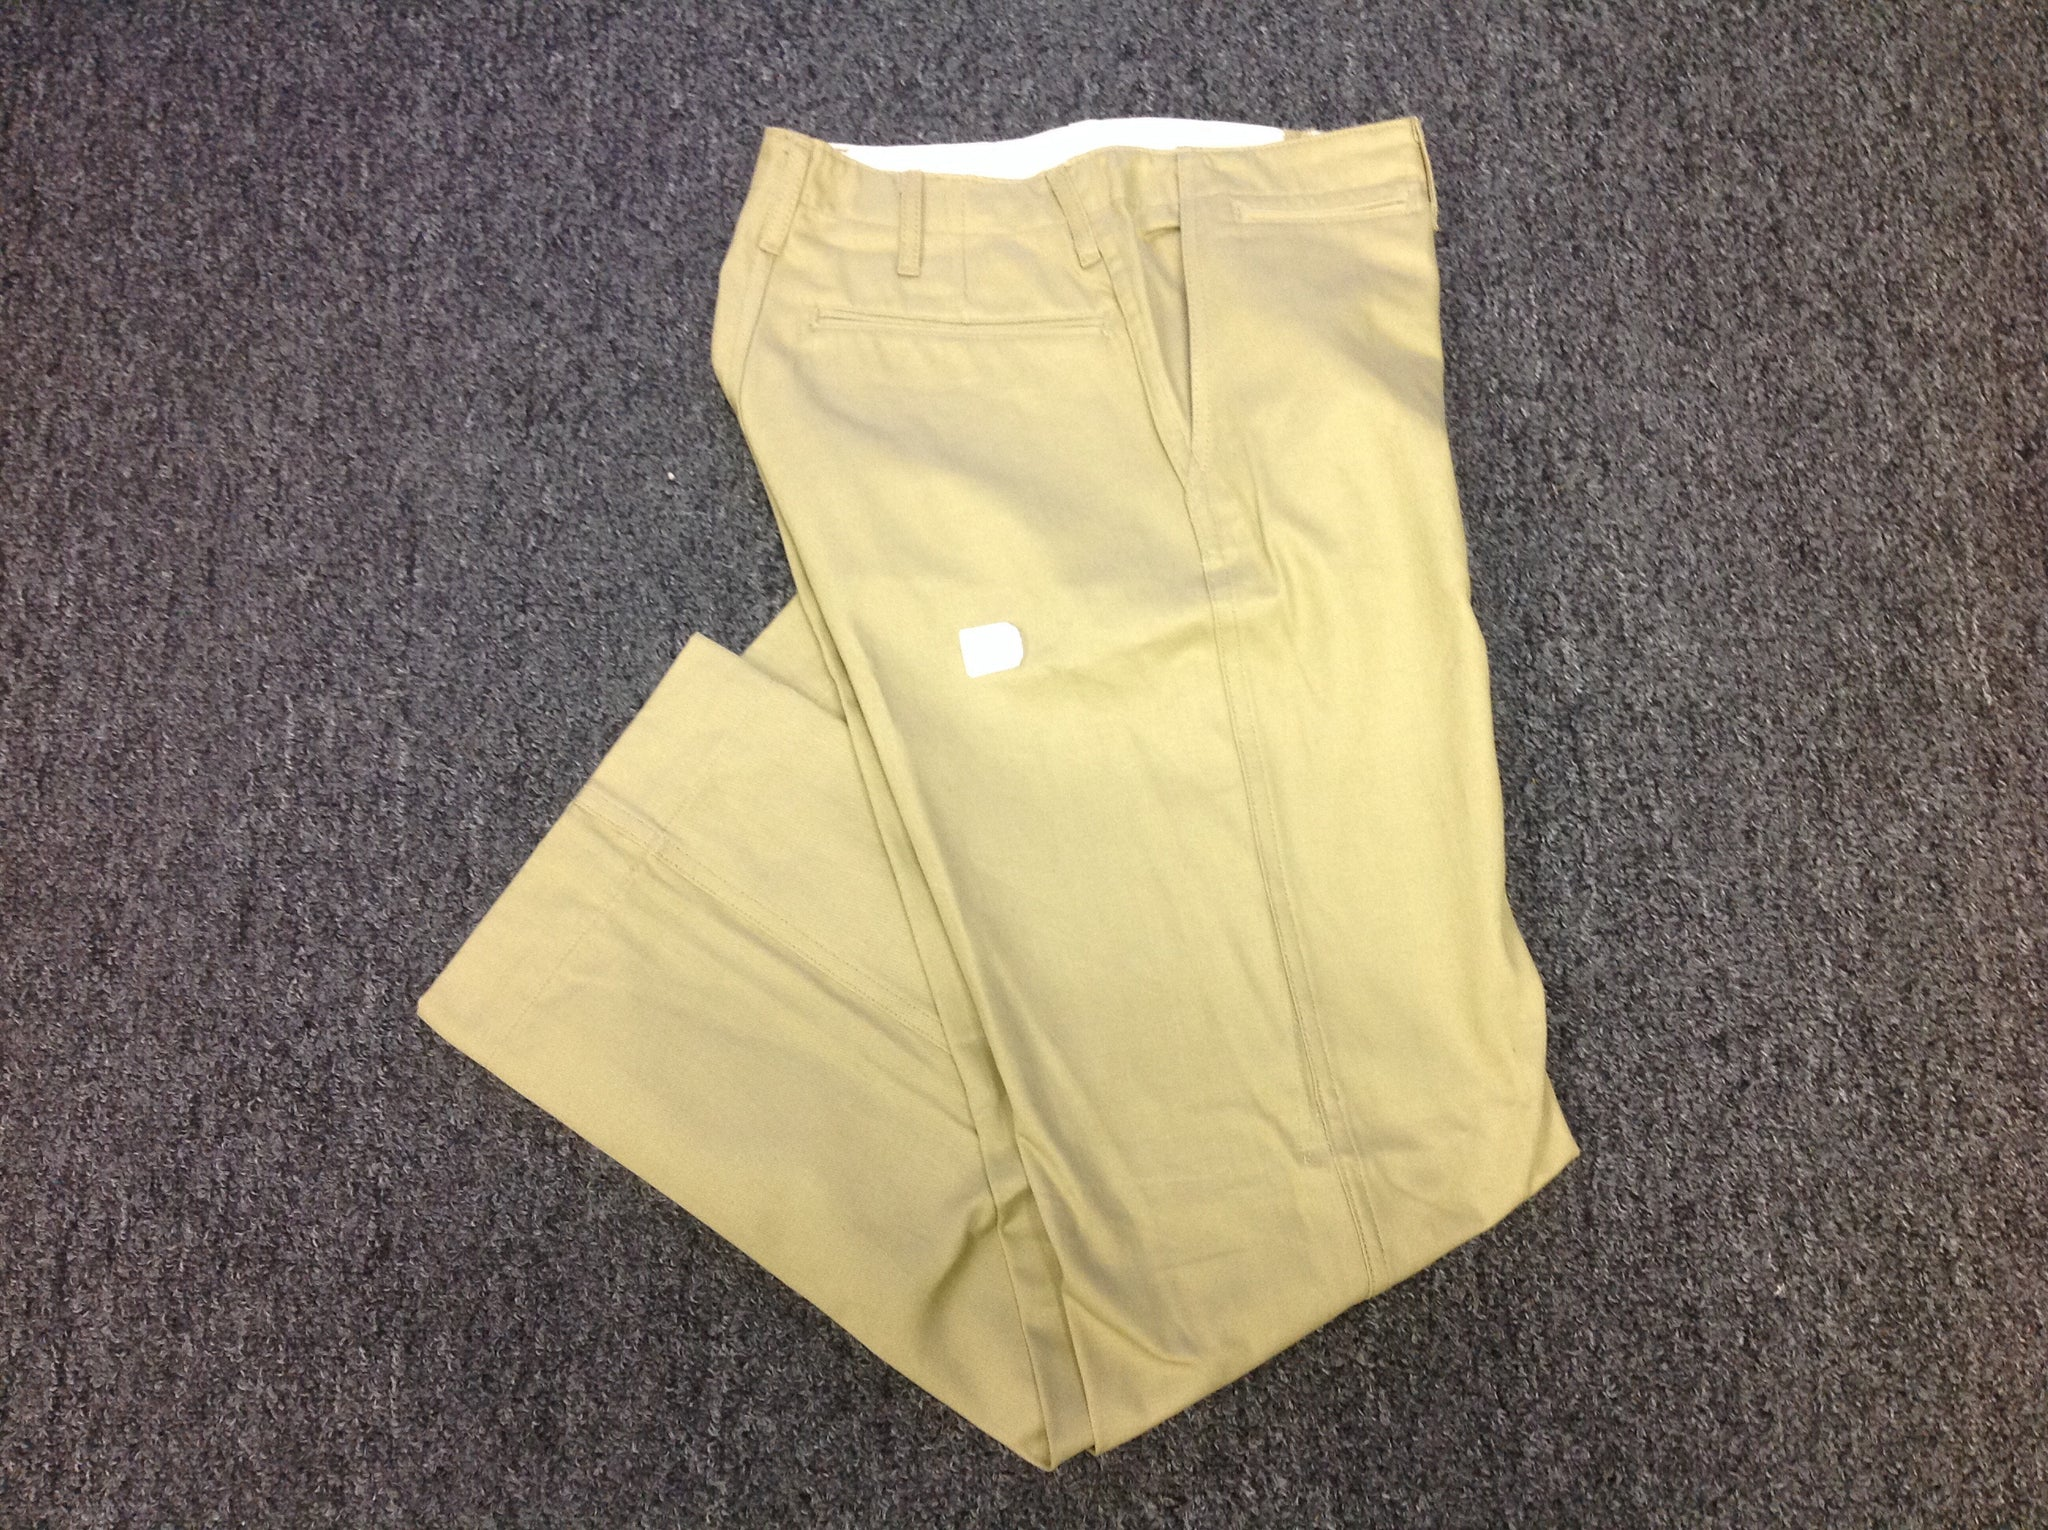 Trousers, Cotton, Khaki, Army CLOSEOUT